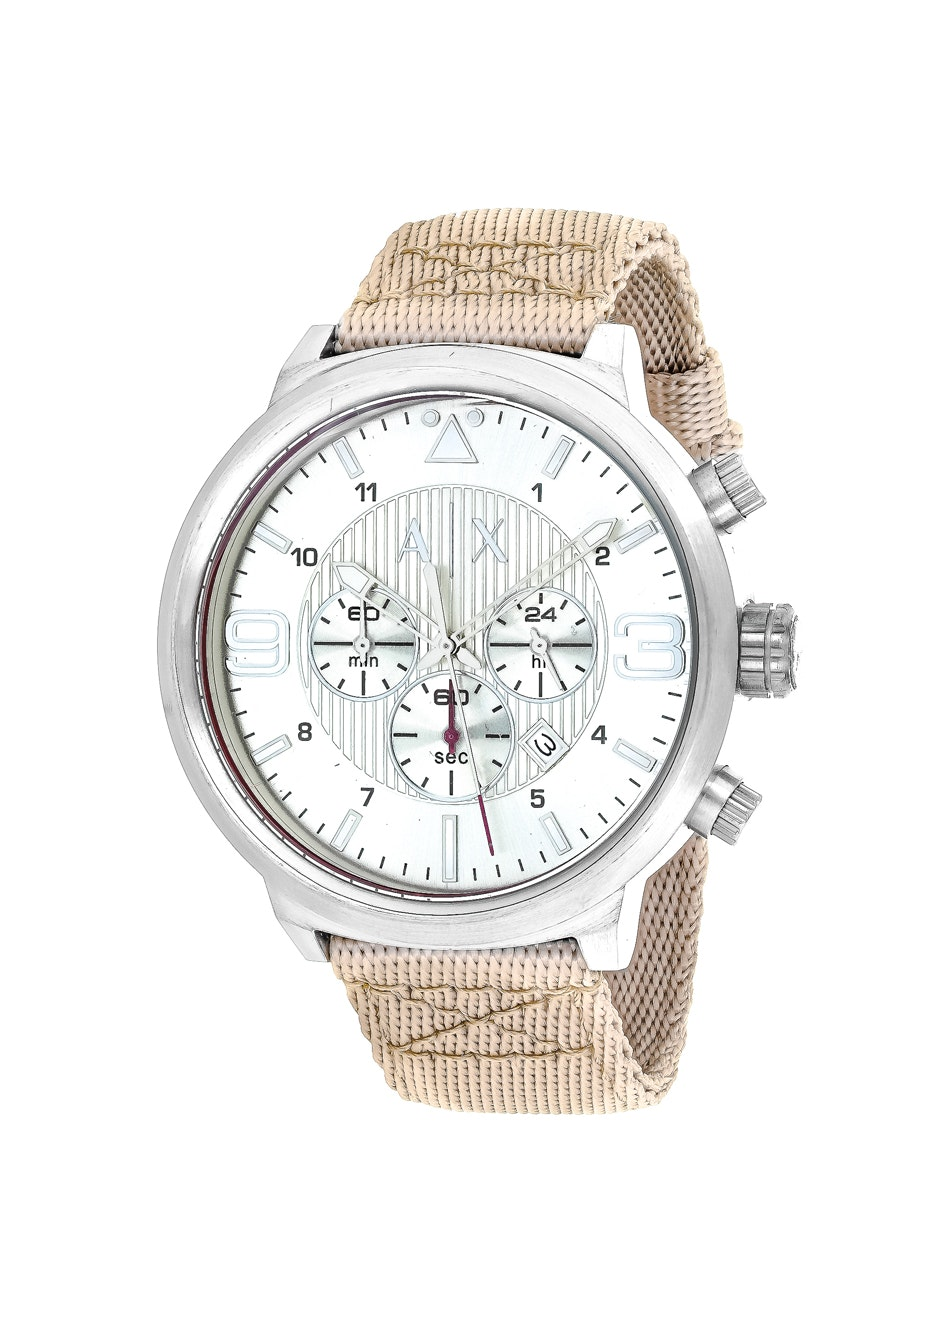 Armani Exchange Men's Classic - Taupe/Brown